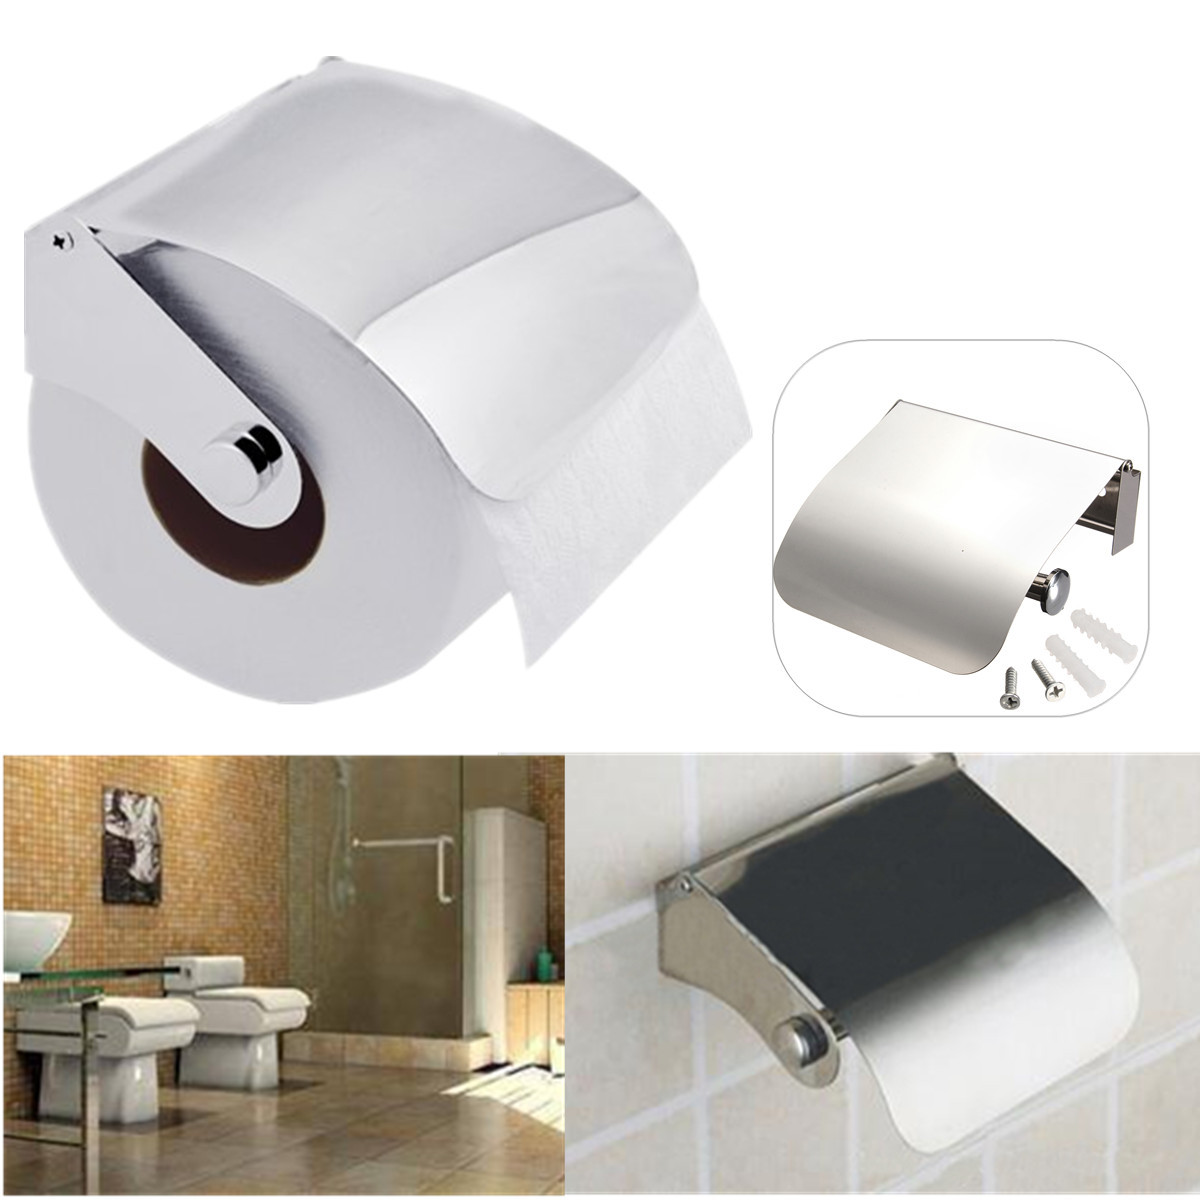 Bathroom stainless steel wall mounted toilet paper holder roll tissue rack bath ebay - Tissue holder bathroom ...